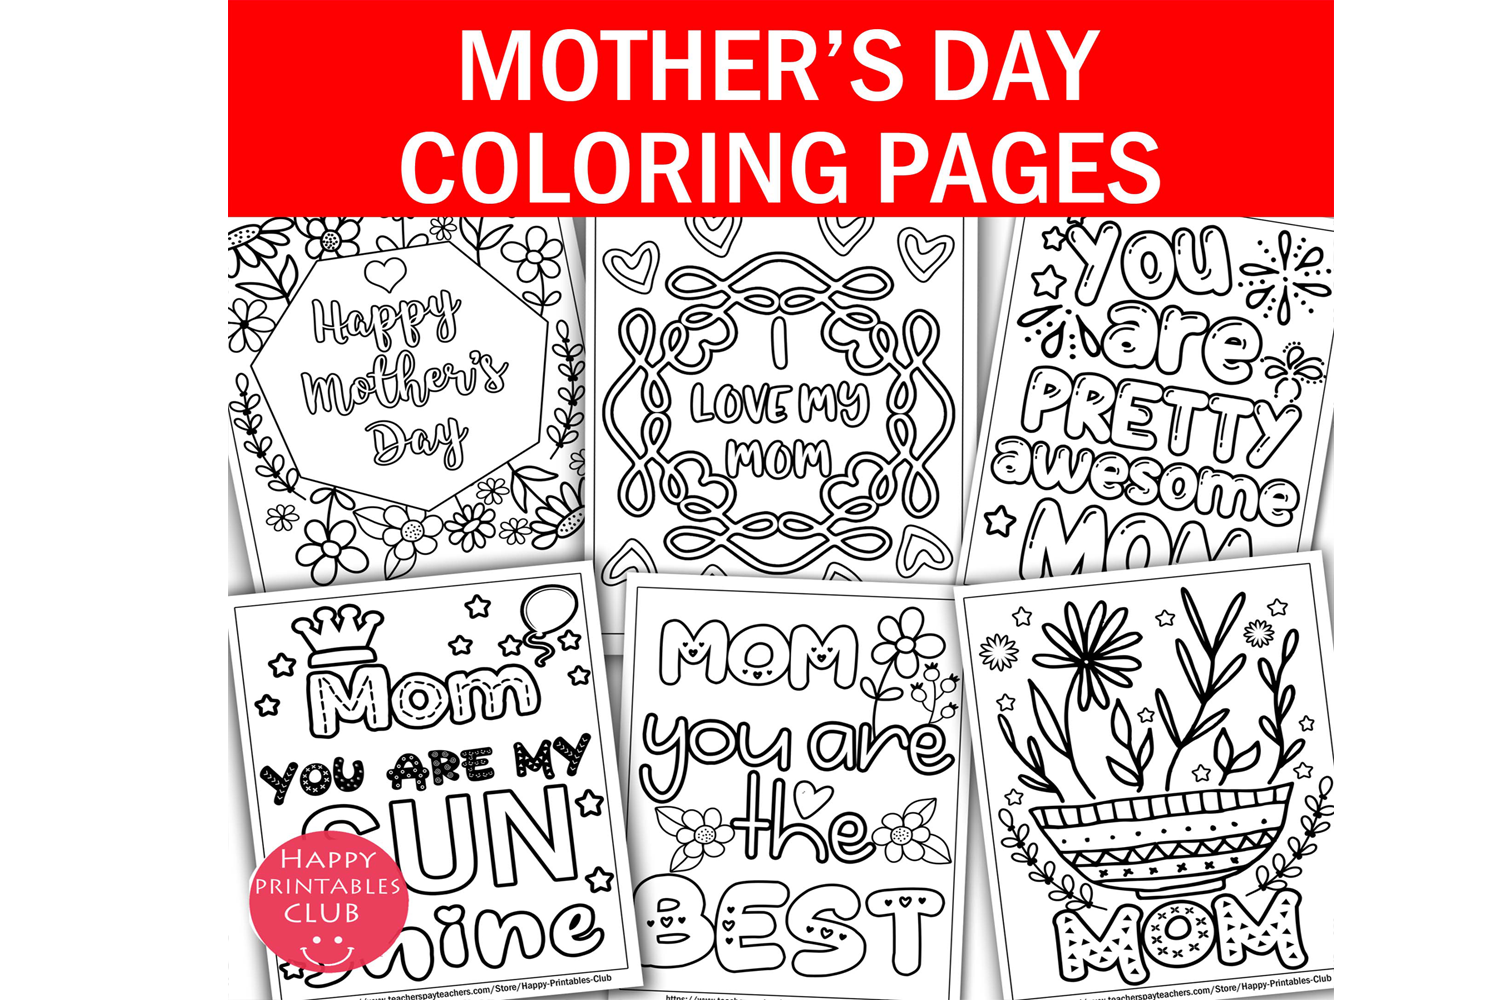 Mothers Day Coloring Pages Printables Graphic By Happy